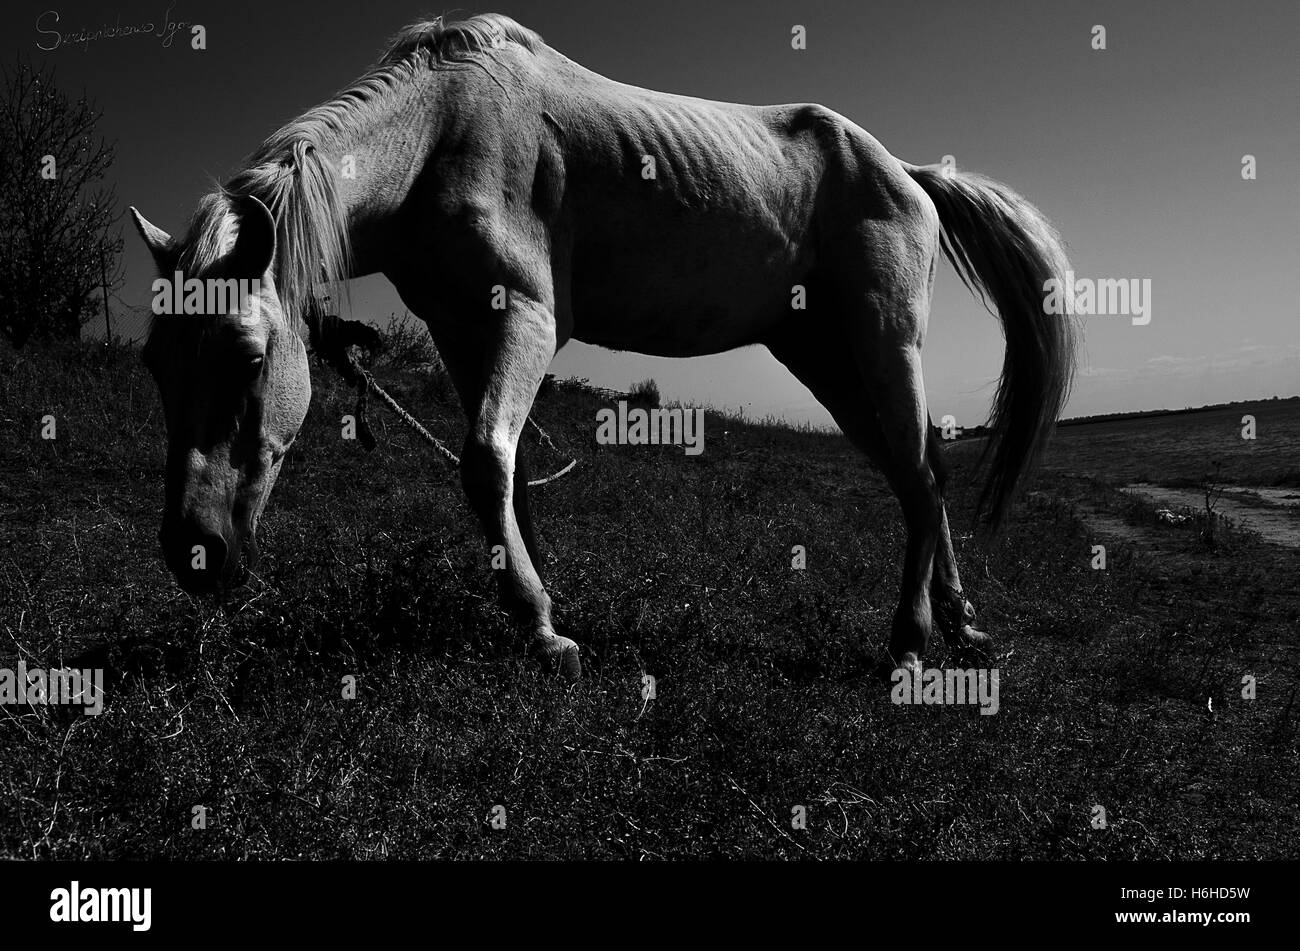 White horse in field - Stock Image